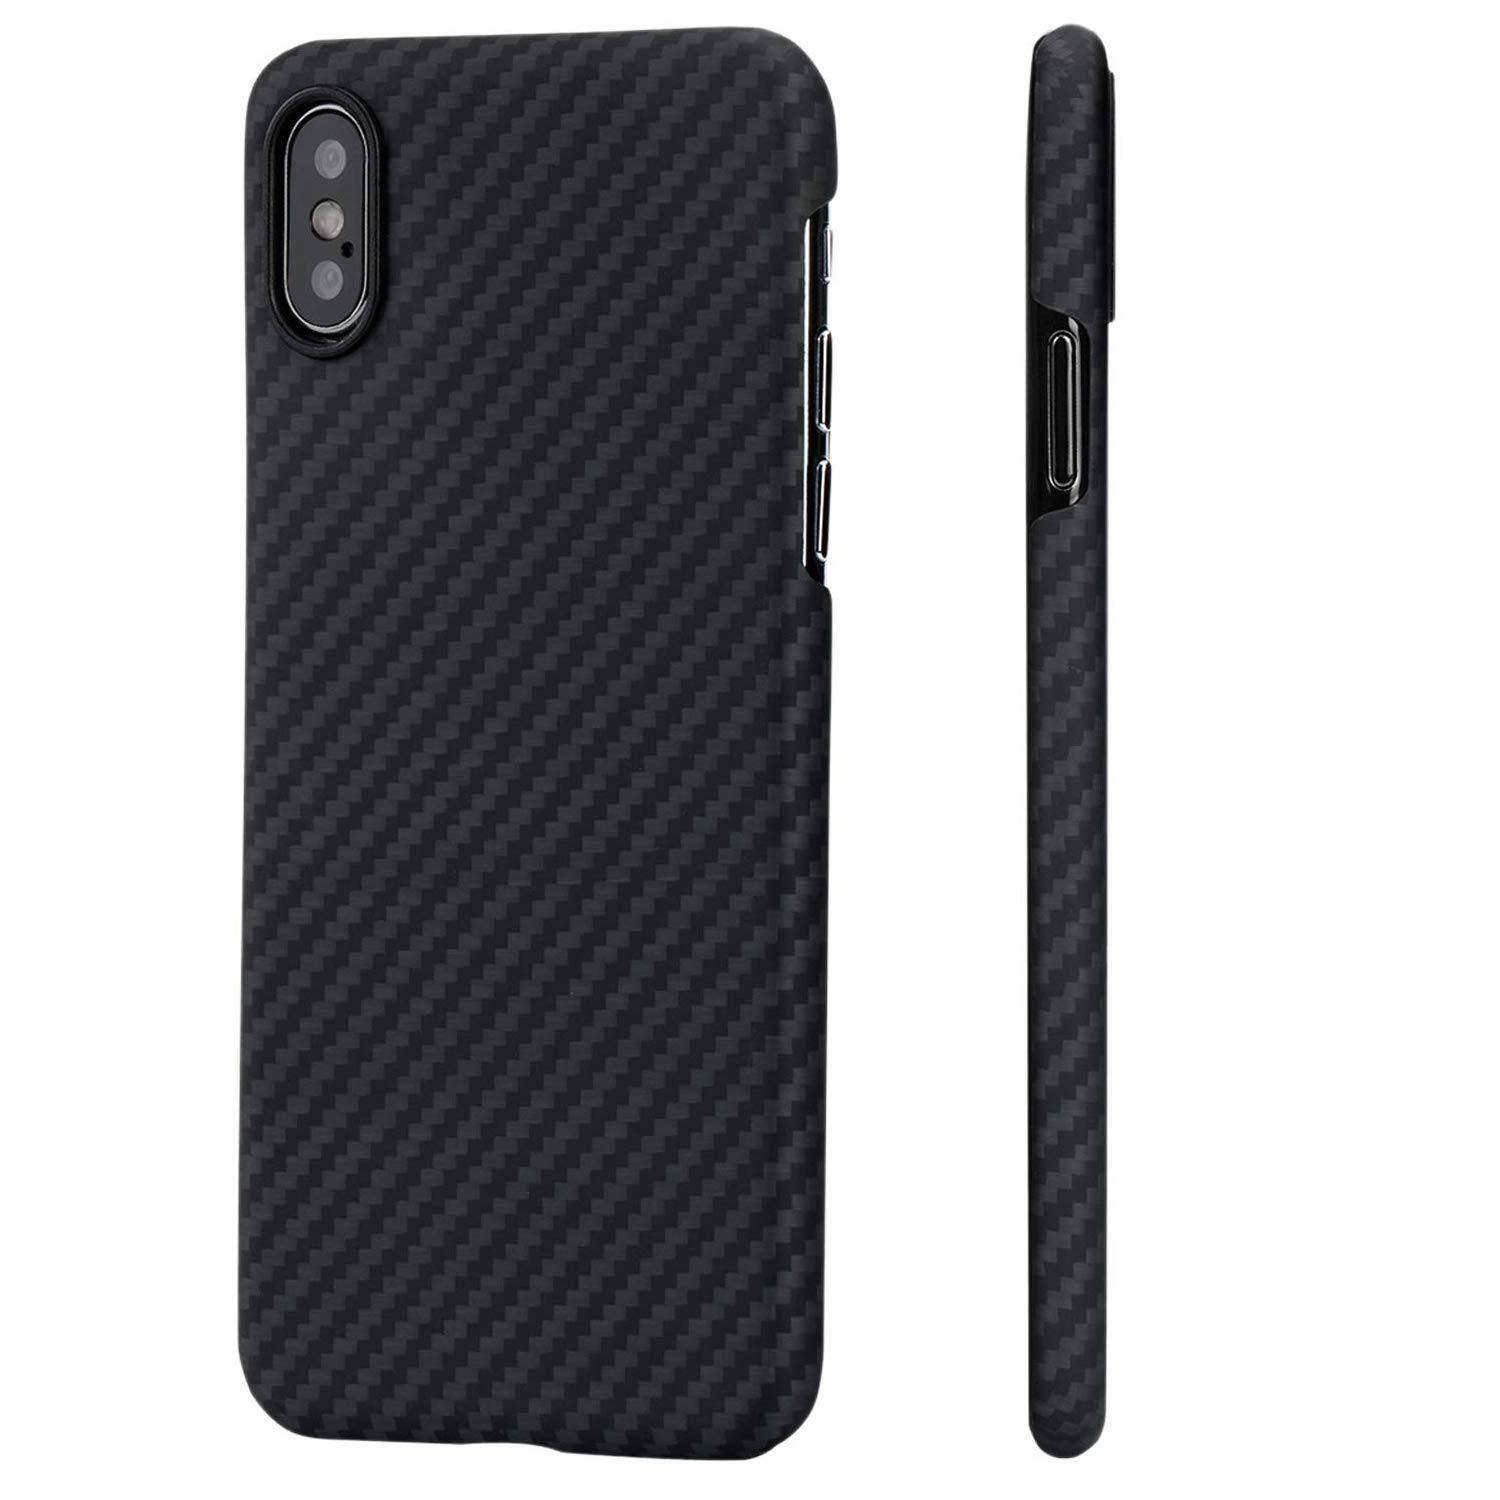 Carbon Fiber Phone Case for iPhone X/10 5.8-inch